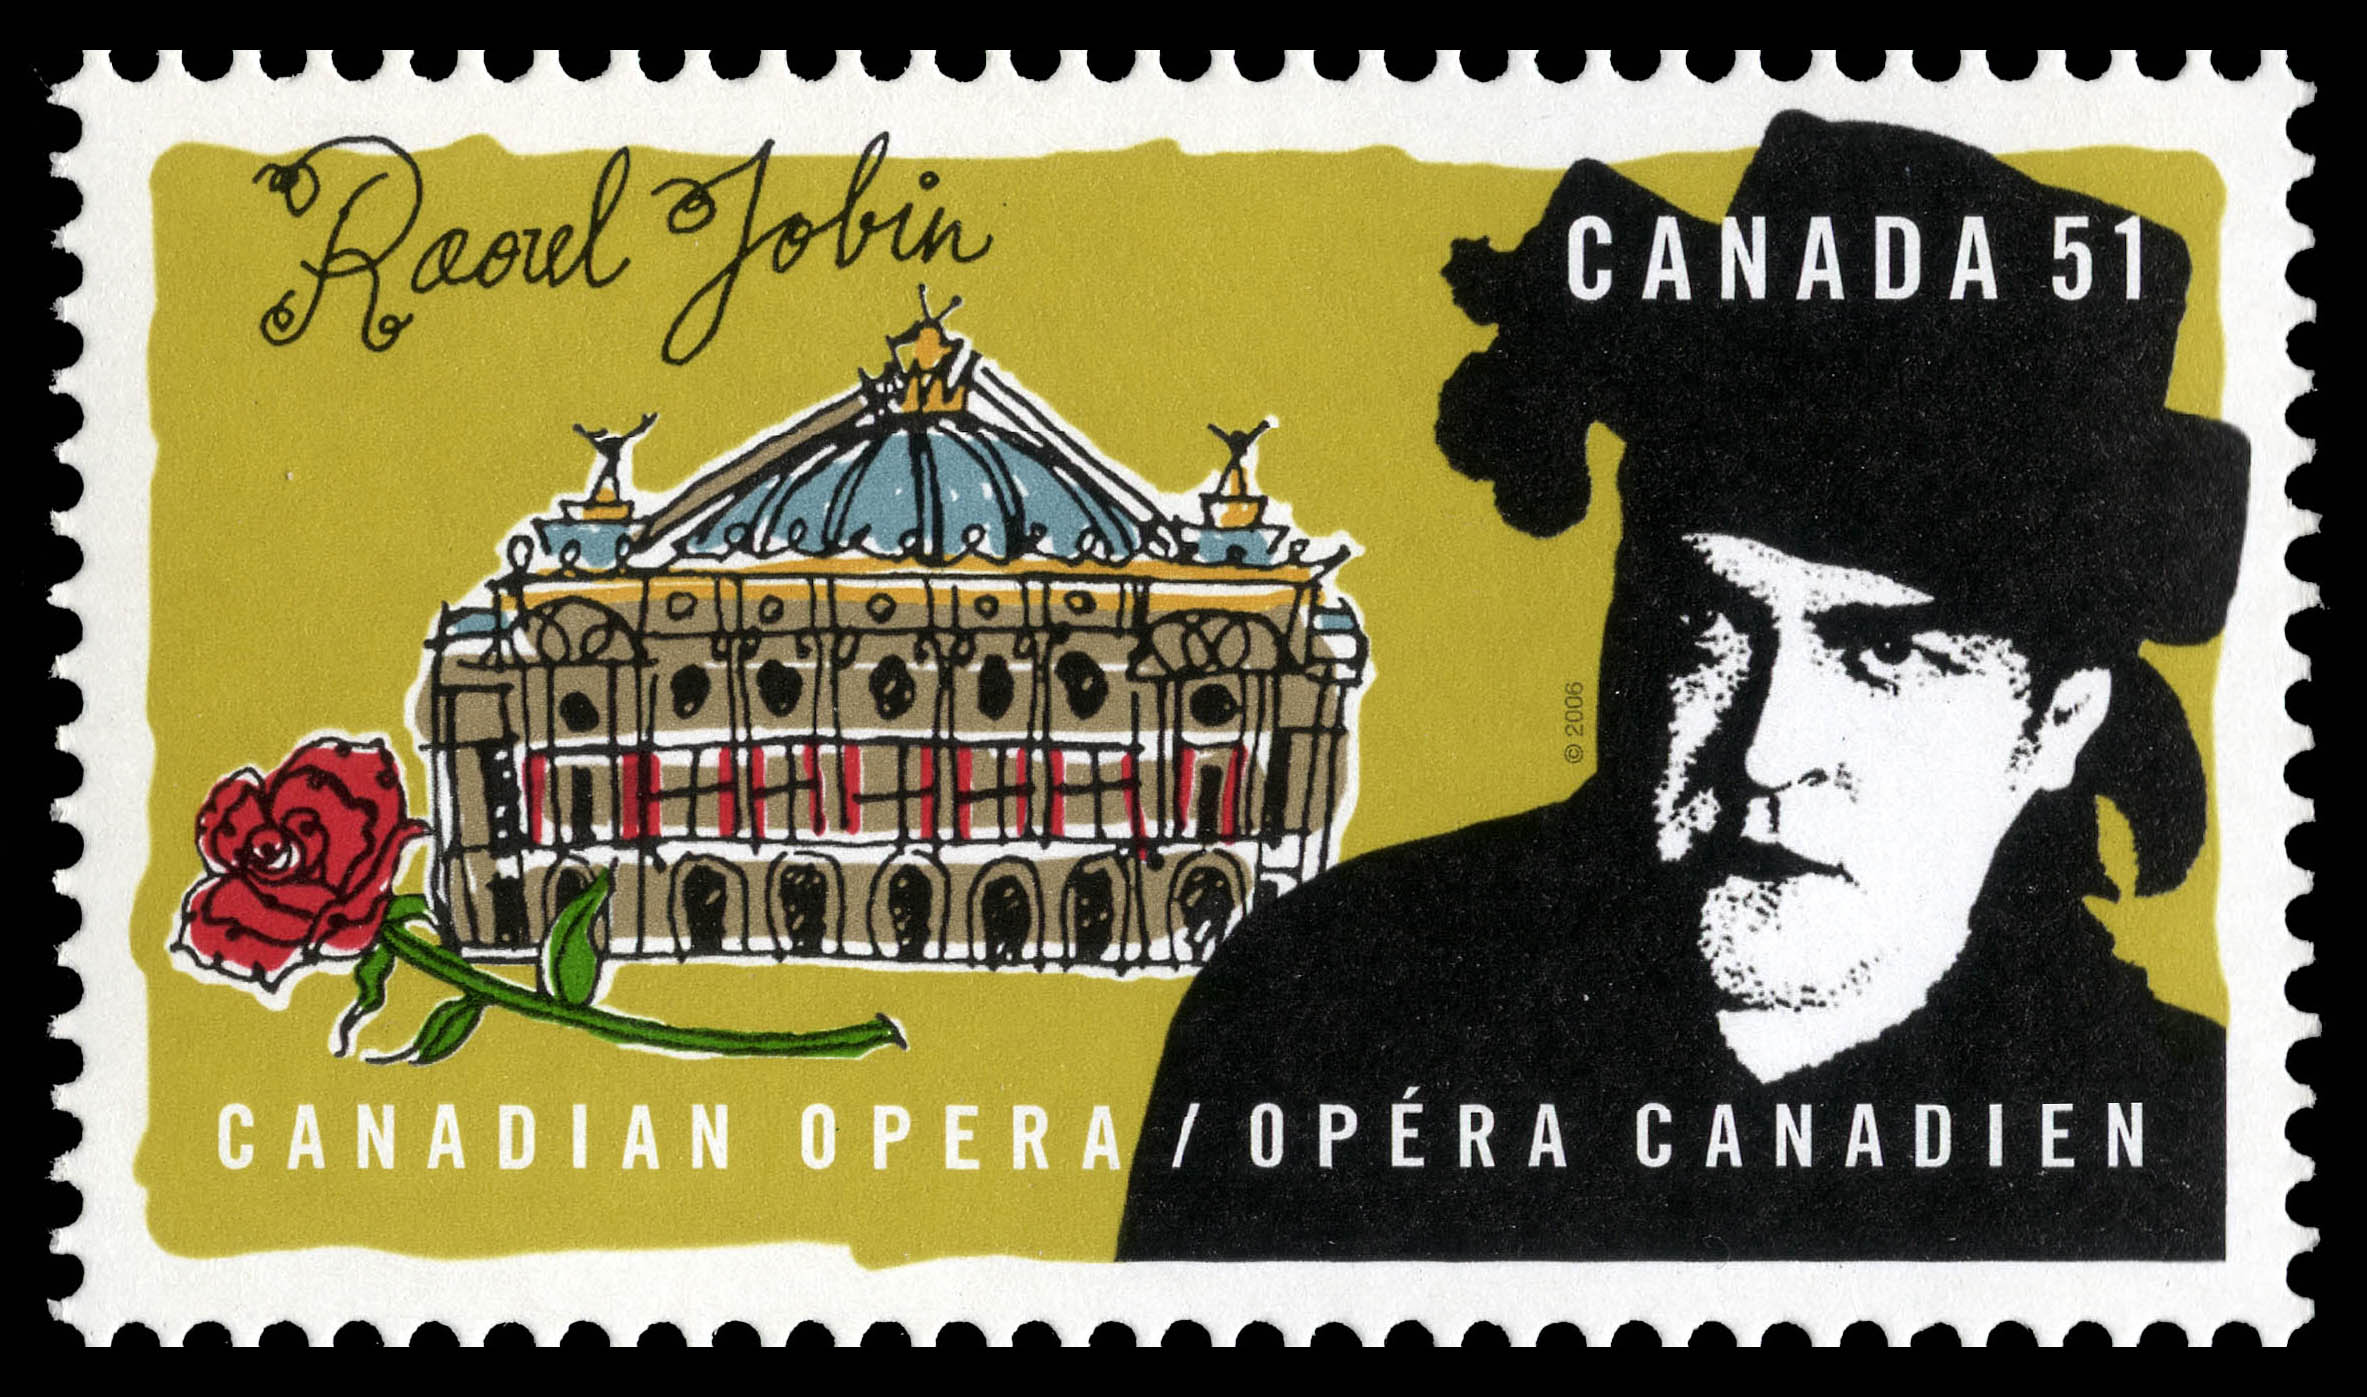 Raoul Jobin Canada Postage Stamp | Canadian opera